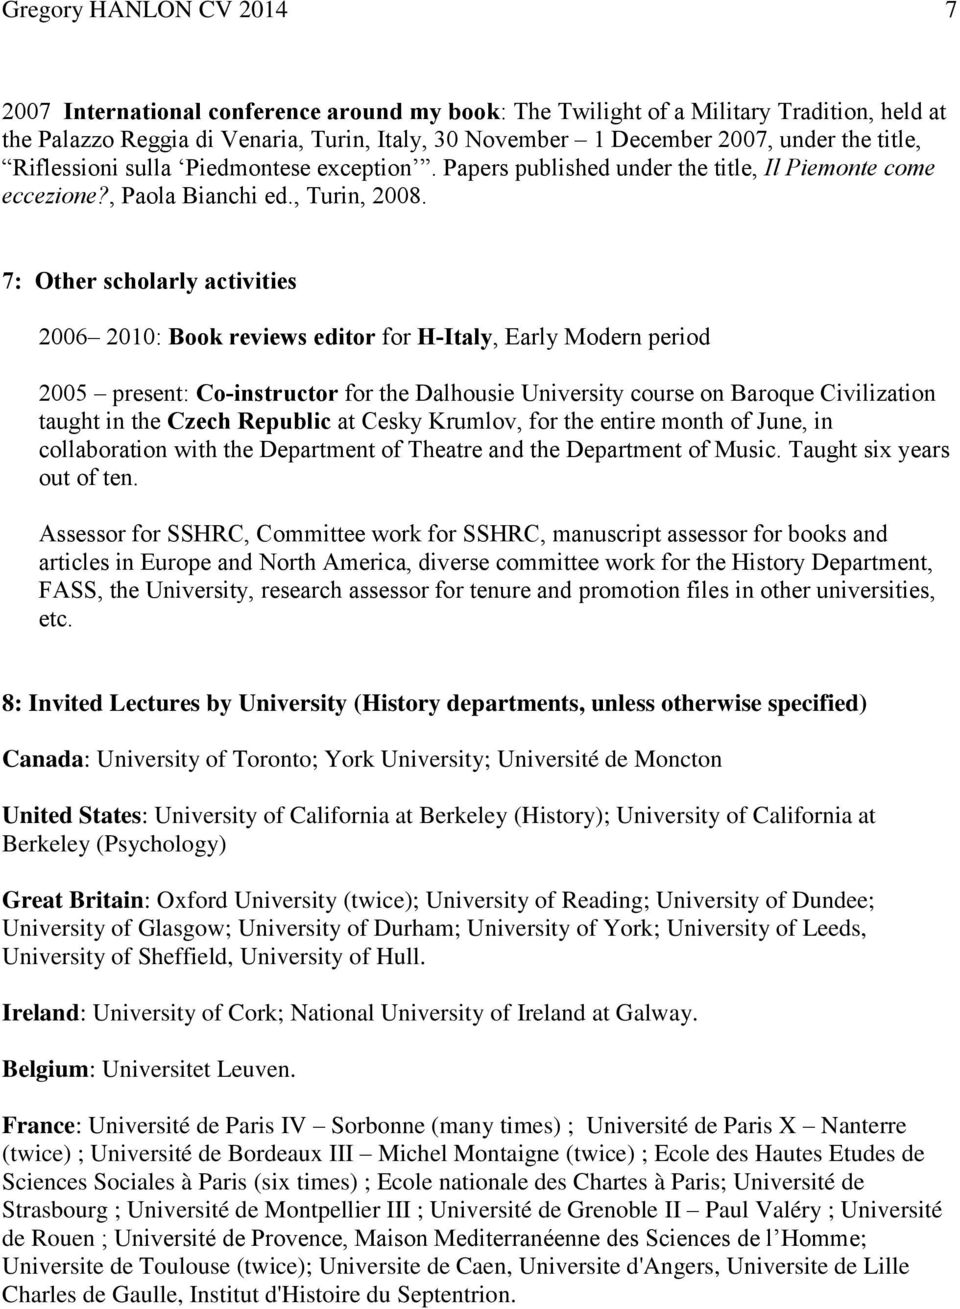 7: Other scholarly activities 2006 2010: Book reviews editor for H-Italy, Early Modern period 2005 present: Co-instructor for the Dalhousie University course on Baroque Civilization taught in the